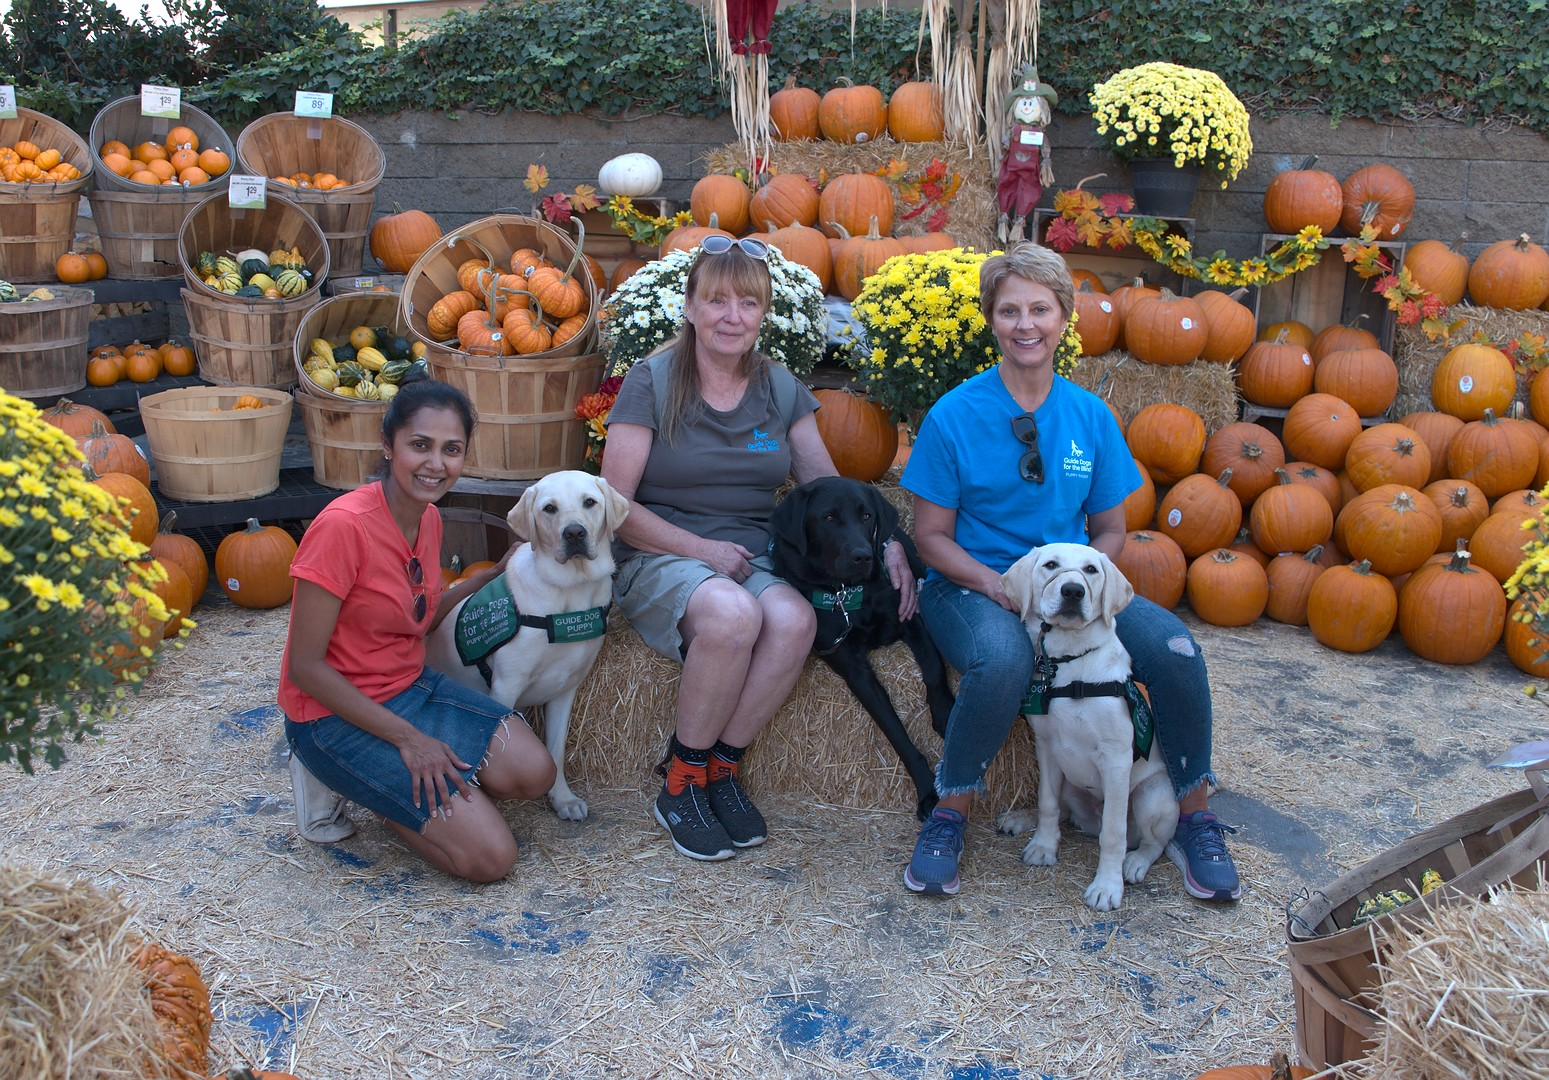 Daya with Kazuki, Brenda with Macklin, Lisa with Emery at the Pumpkin Patch